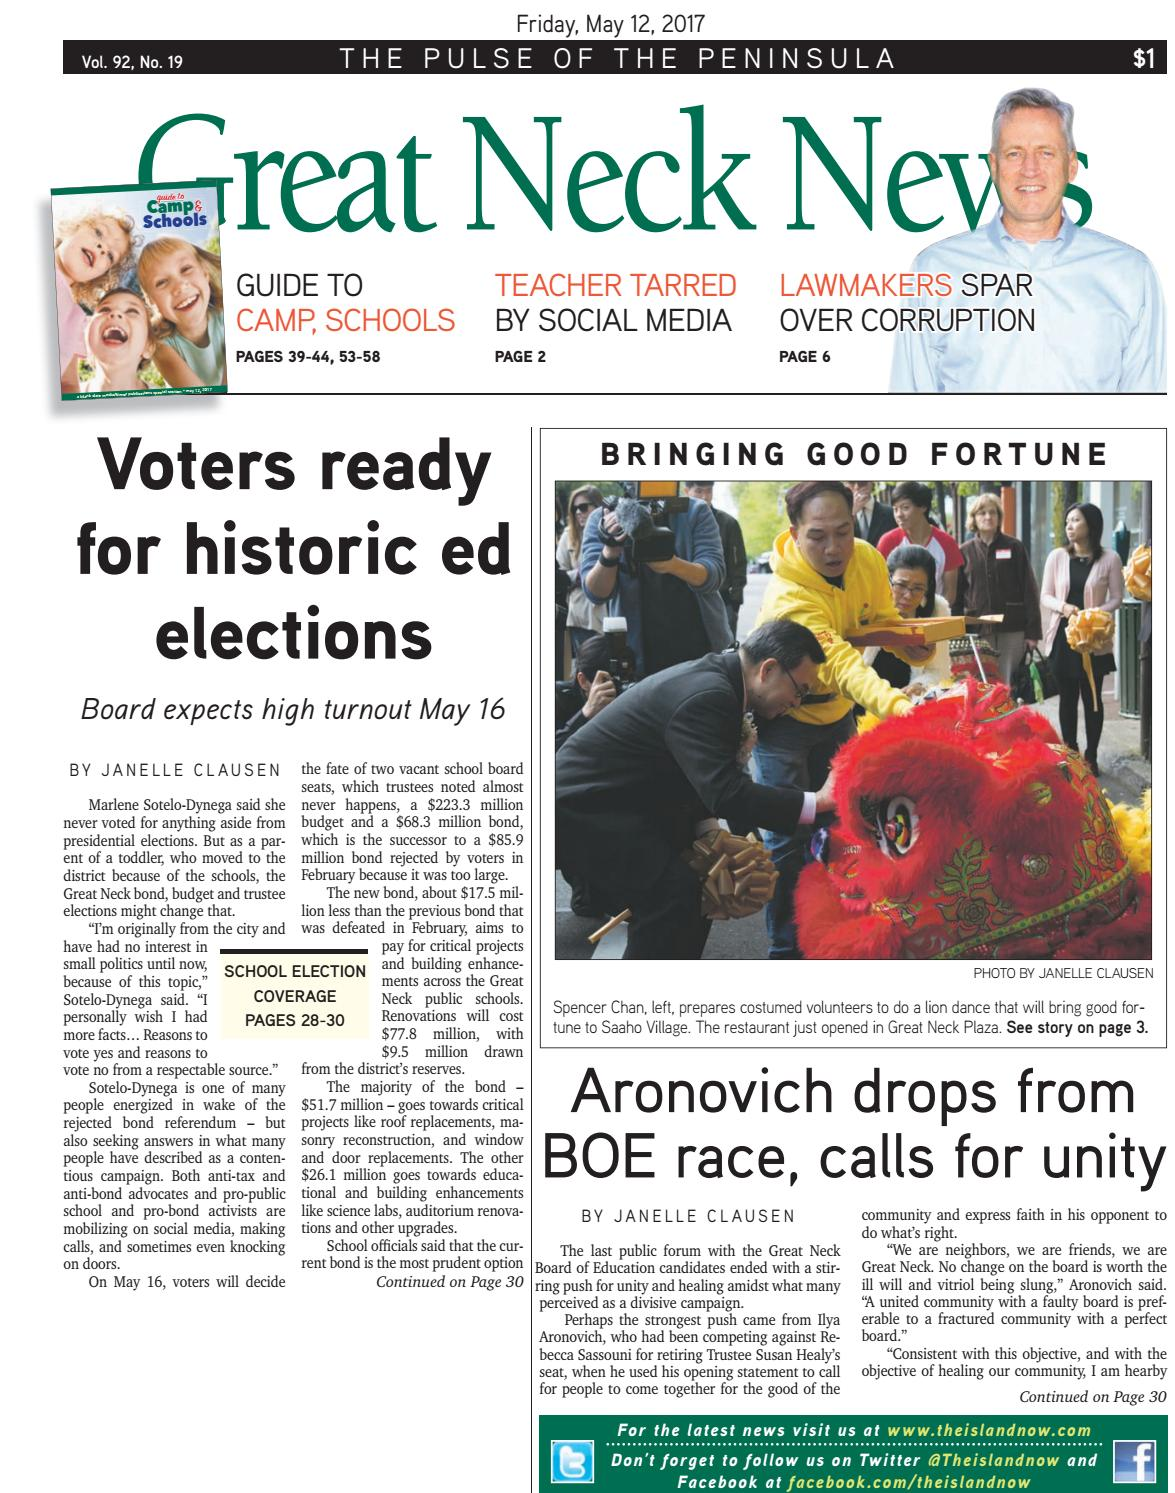 Great neck news 05 12 17 by The Island Now - issuu d35e6653b34a9